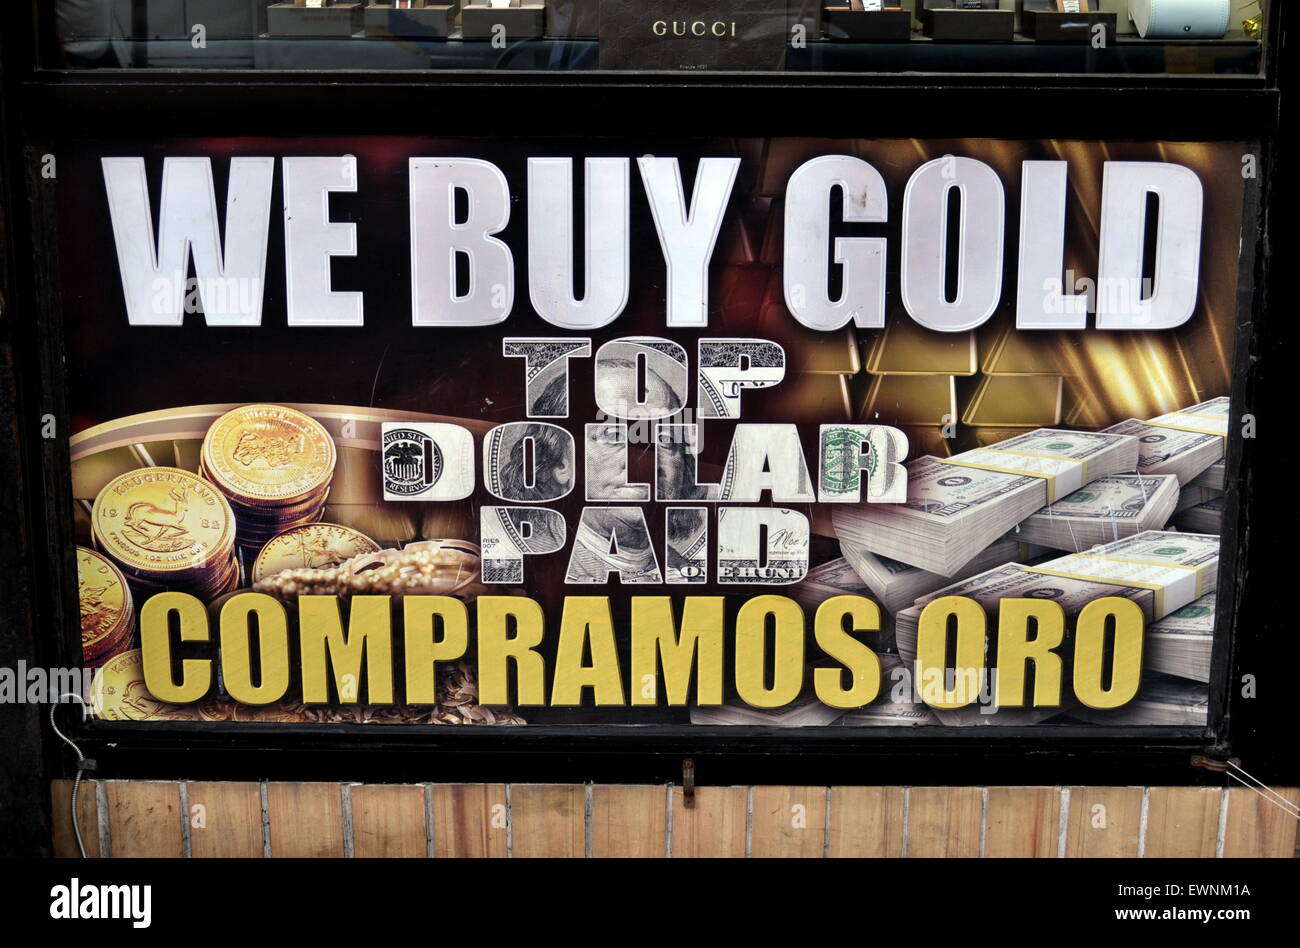 New York City:  We Buy Gold sign at a jewelry shop on Broadway in Hamilton Heights in English and Spanish - Stock Image